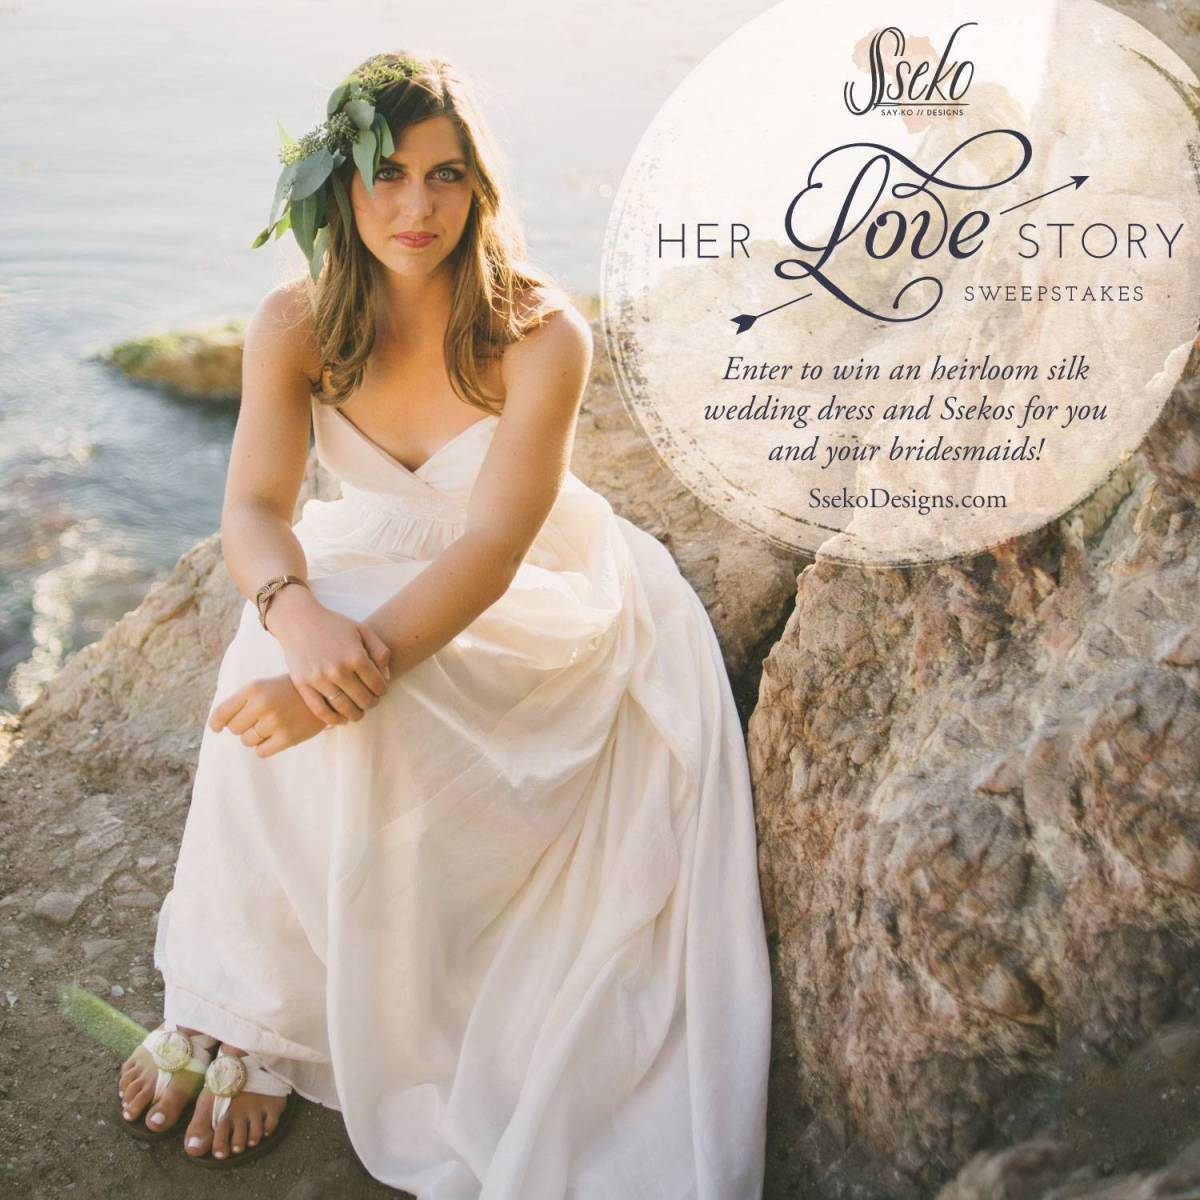 Her Love Story Sweepstakes with Celia Grace + Sseko Designs